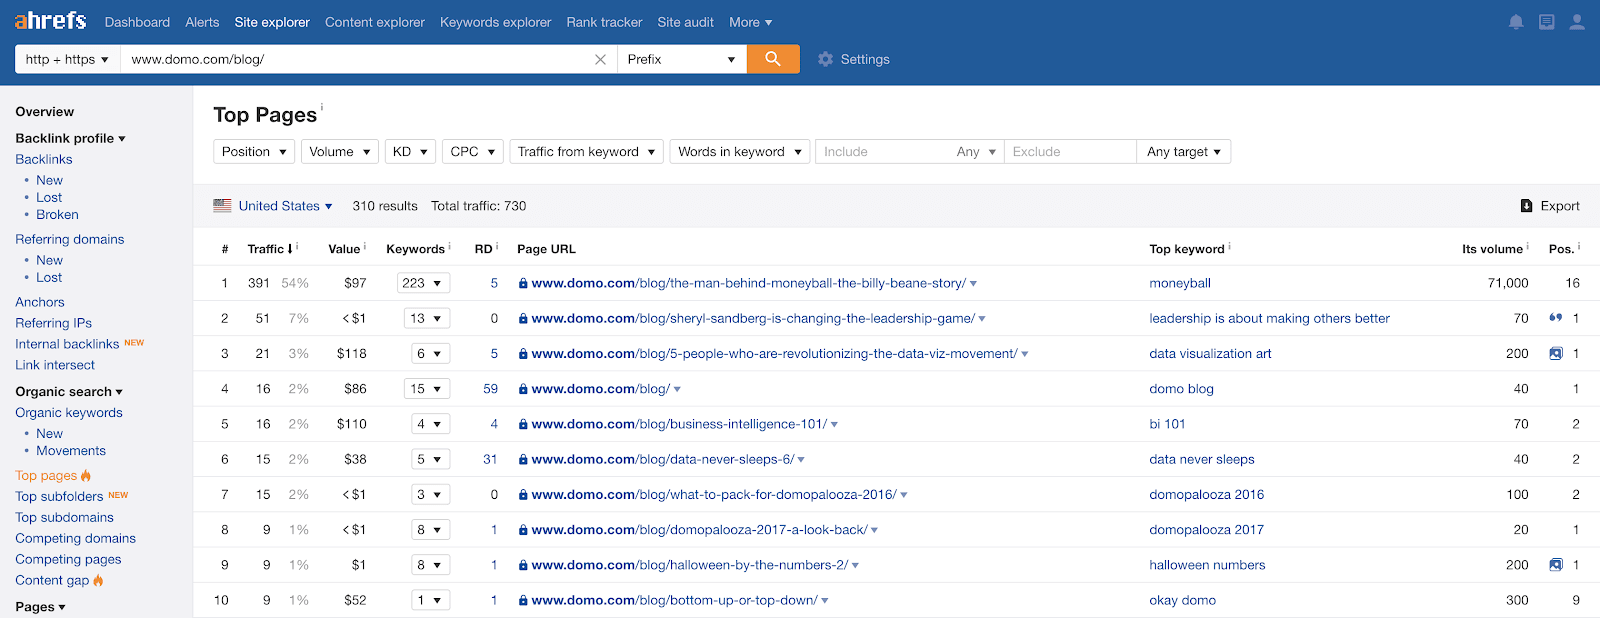 Ahrefs analyzes Top Pages of any website domain